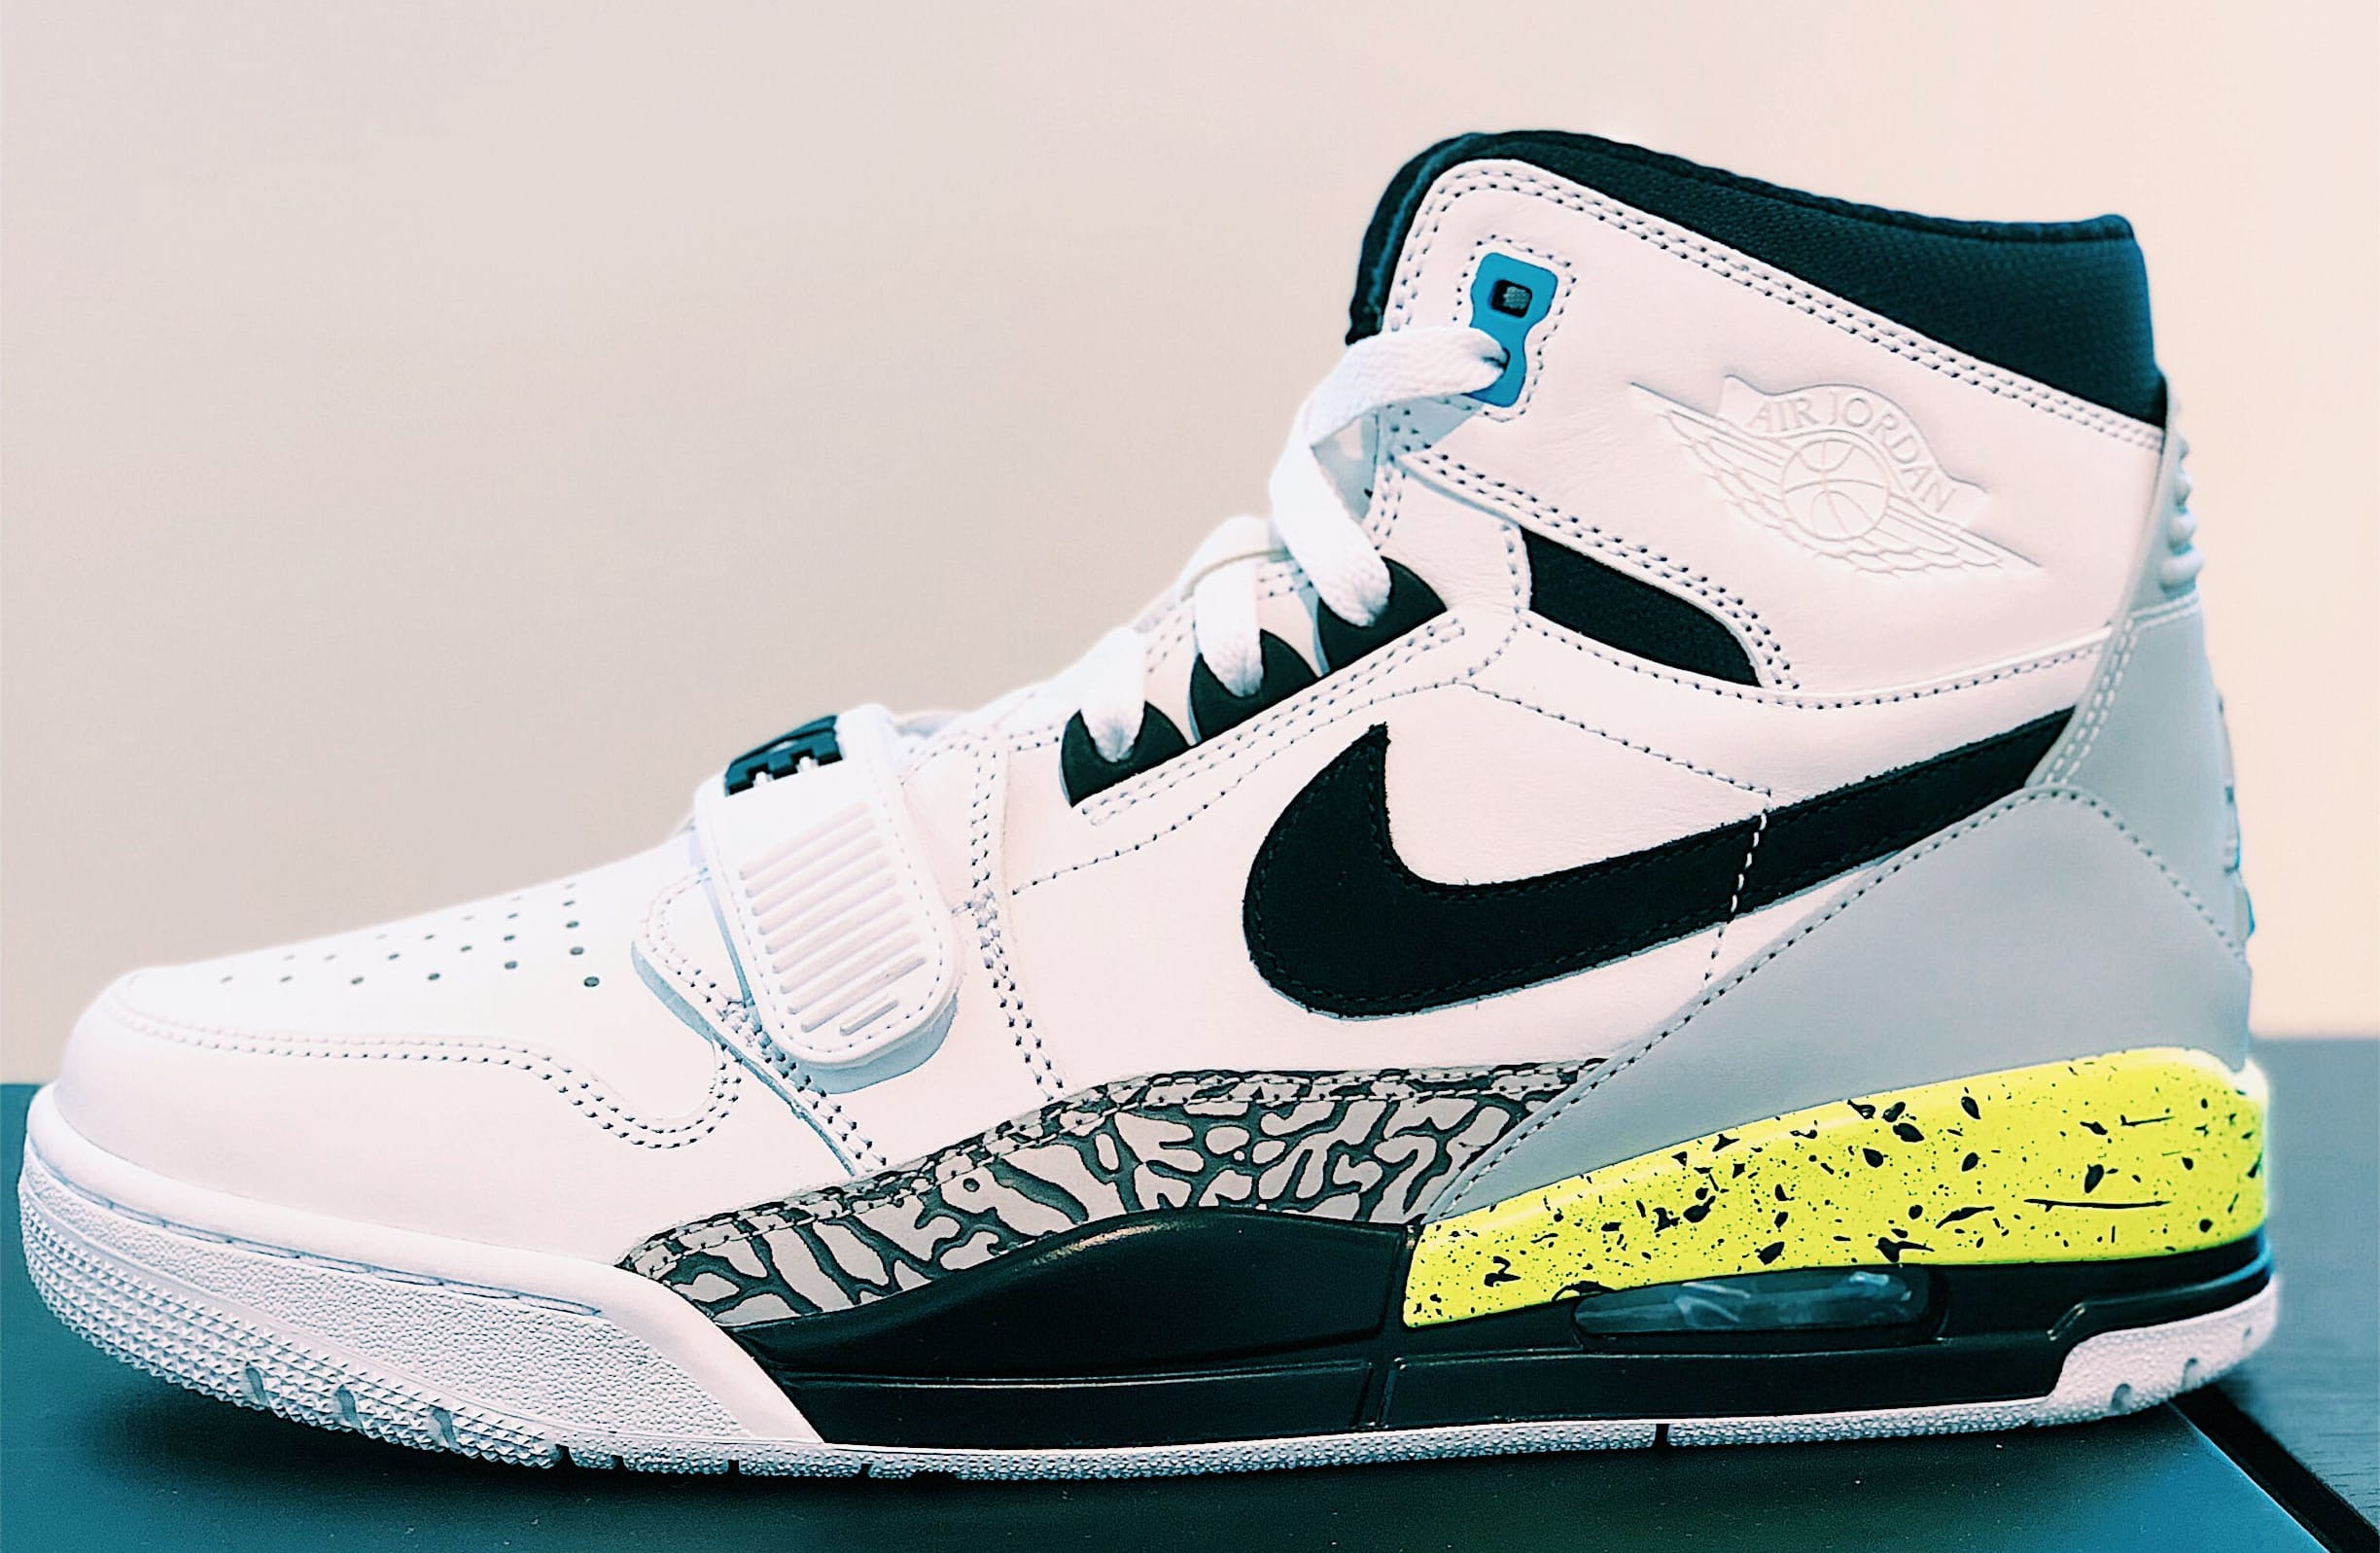 buy online 6302b 12194 Don C x Jordan Legacy 312 'Inspired by' Pack Release Date ...